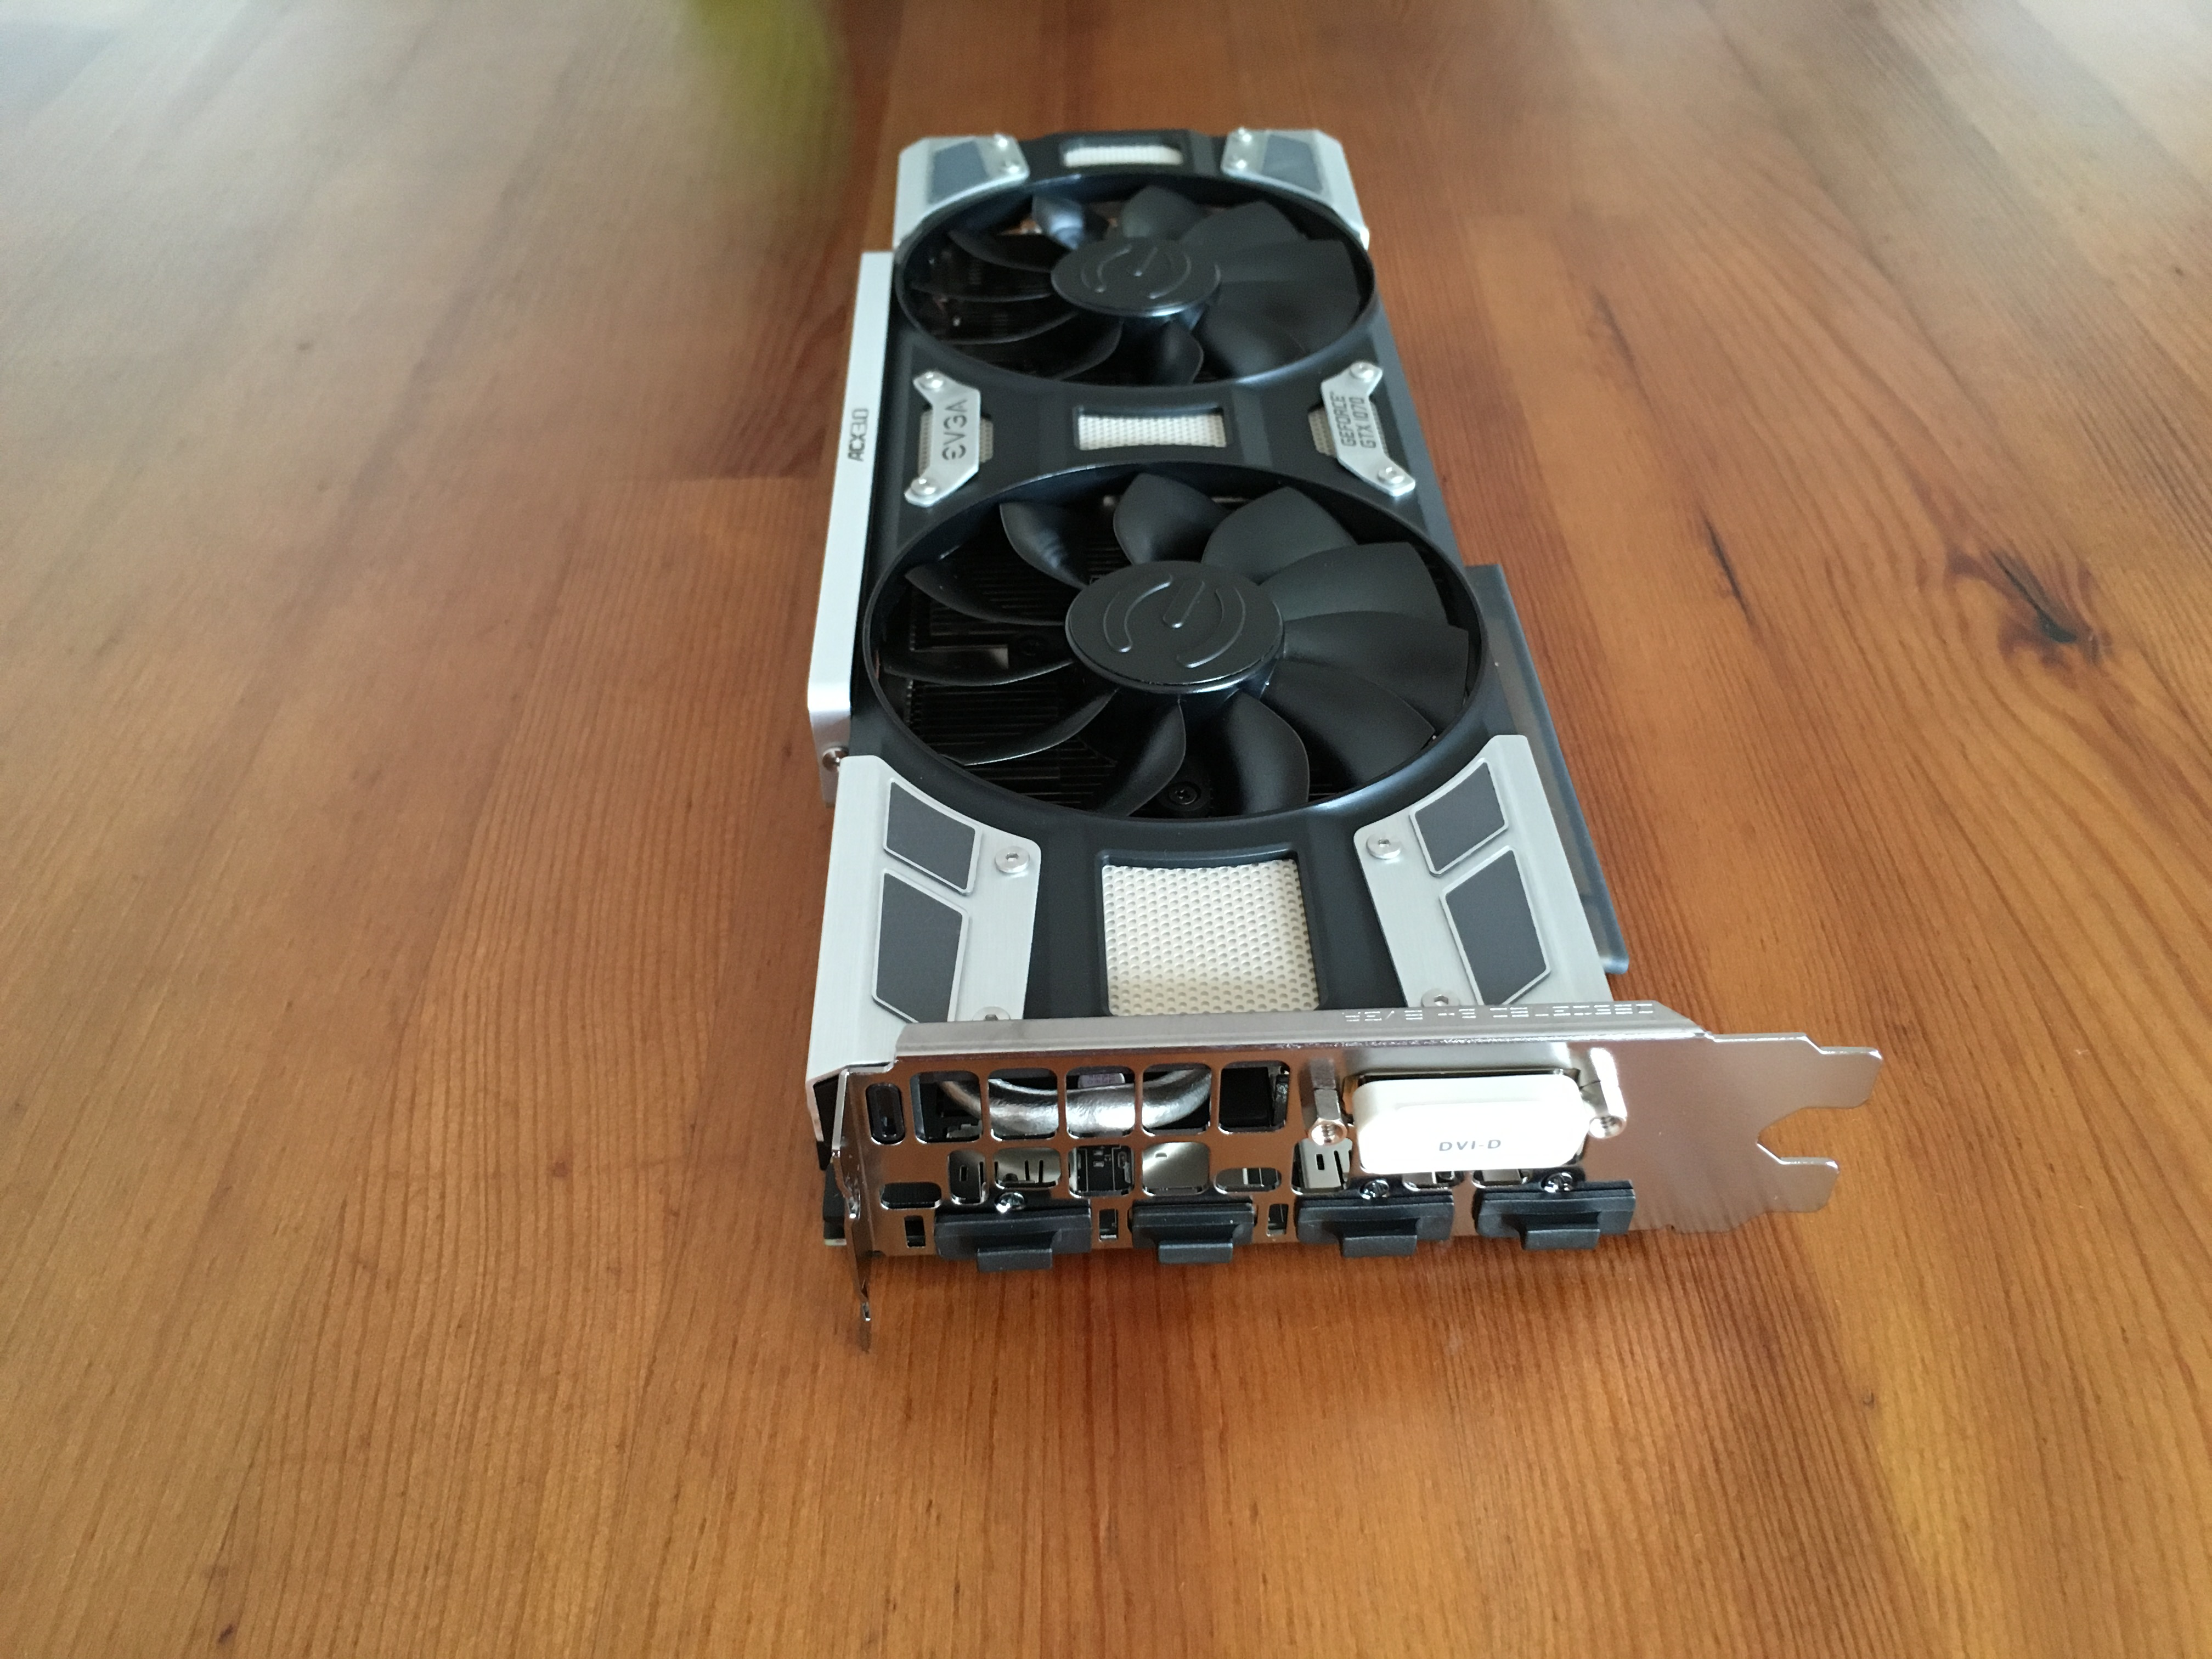 Evga Gtx 1070 Sc Gaming Acx 30 Overclock Image Information Geforce 1060 Ftw 06g P4 6368 Kr 6gb Gddr5 Review